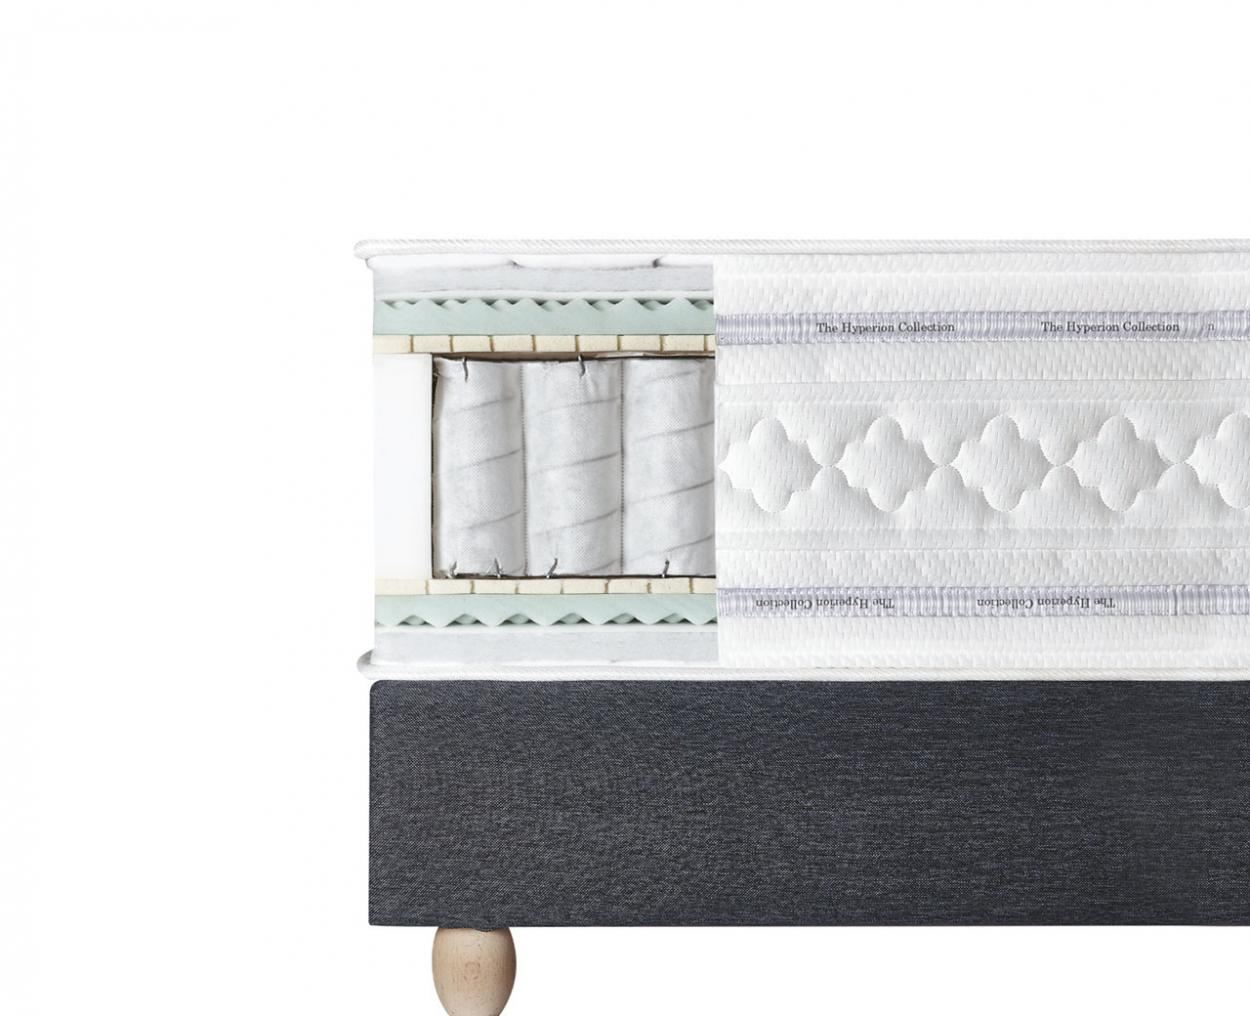 CandiaStrom - Mattress ORION - HYPERION COLLECTION -  Cut